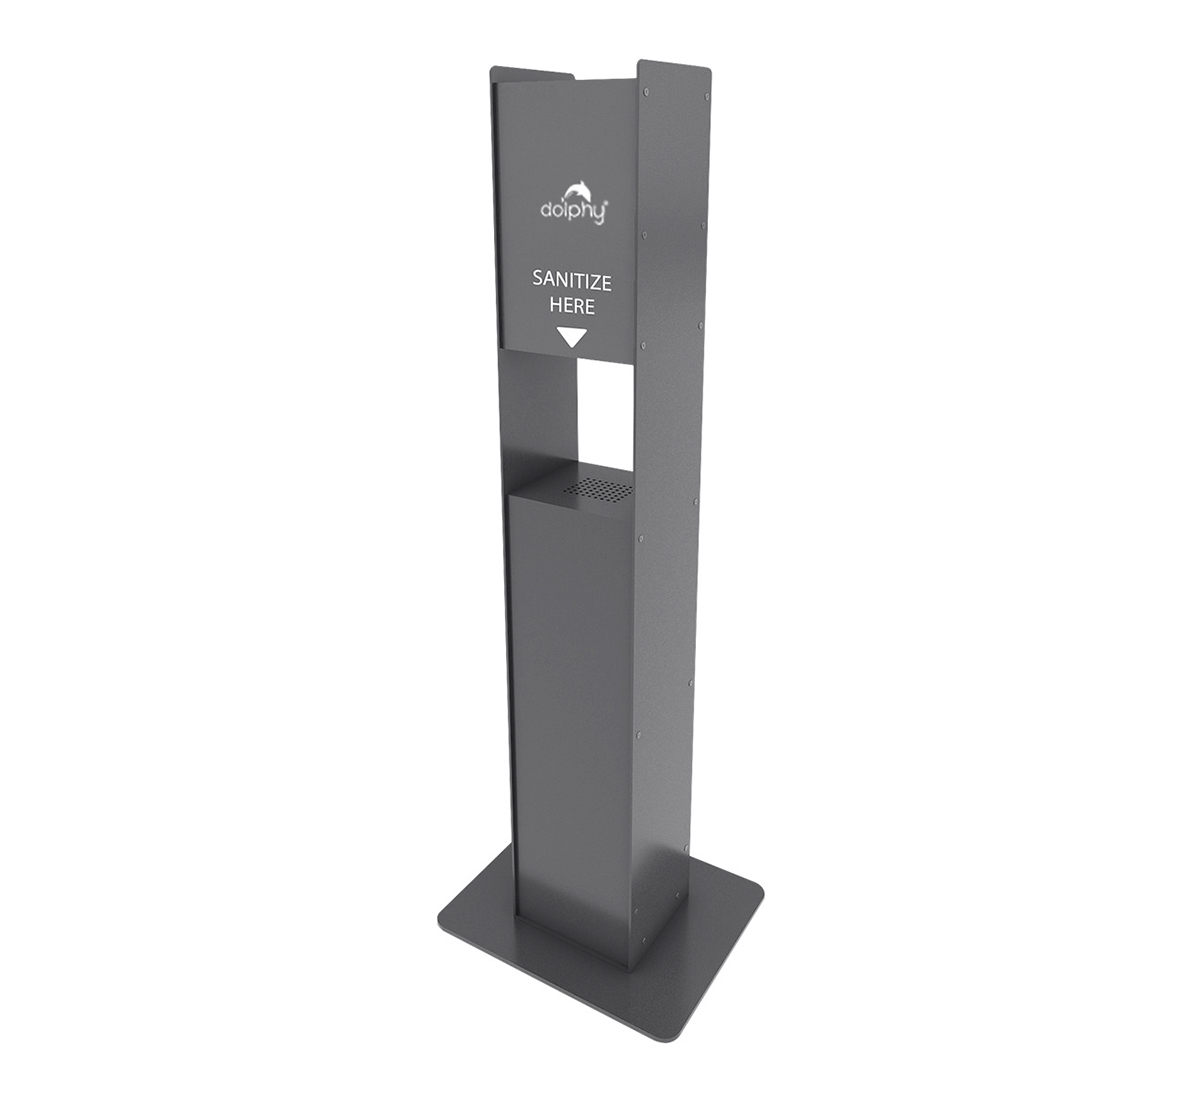 MS Powder Coated Free Stand for Automatic Sanitizer Dispensers